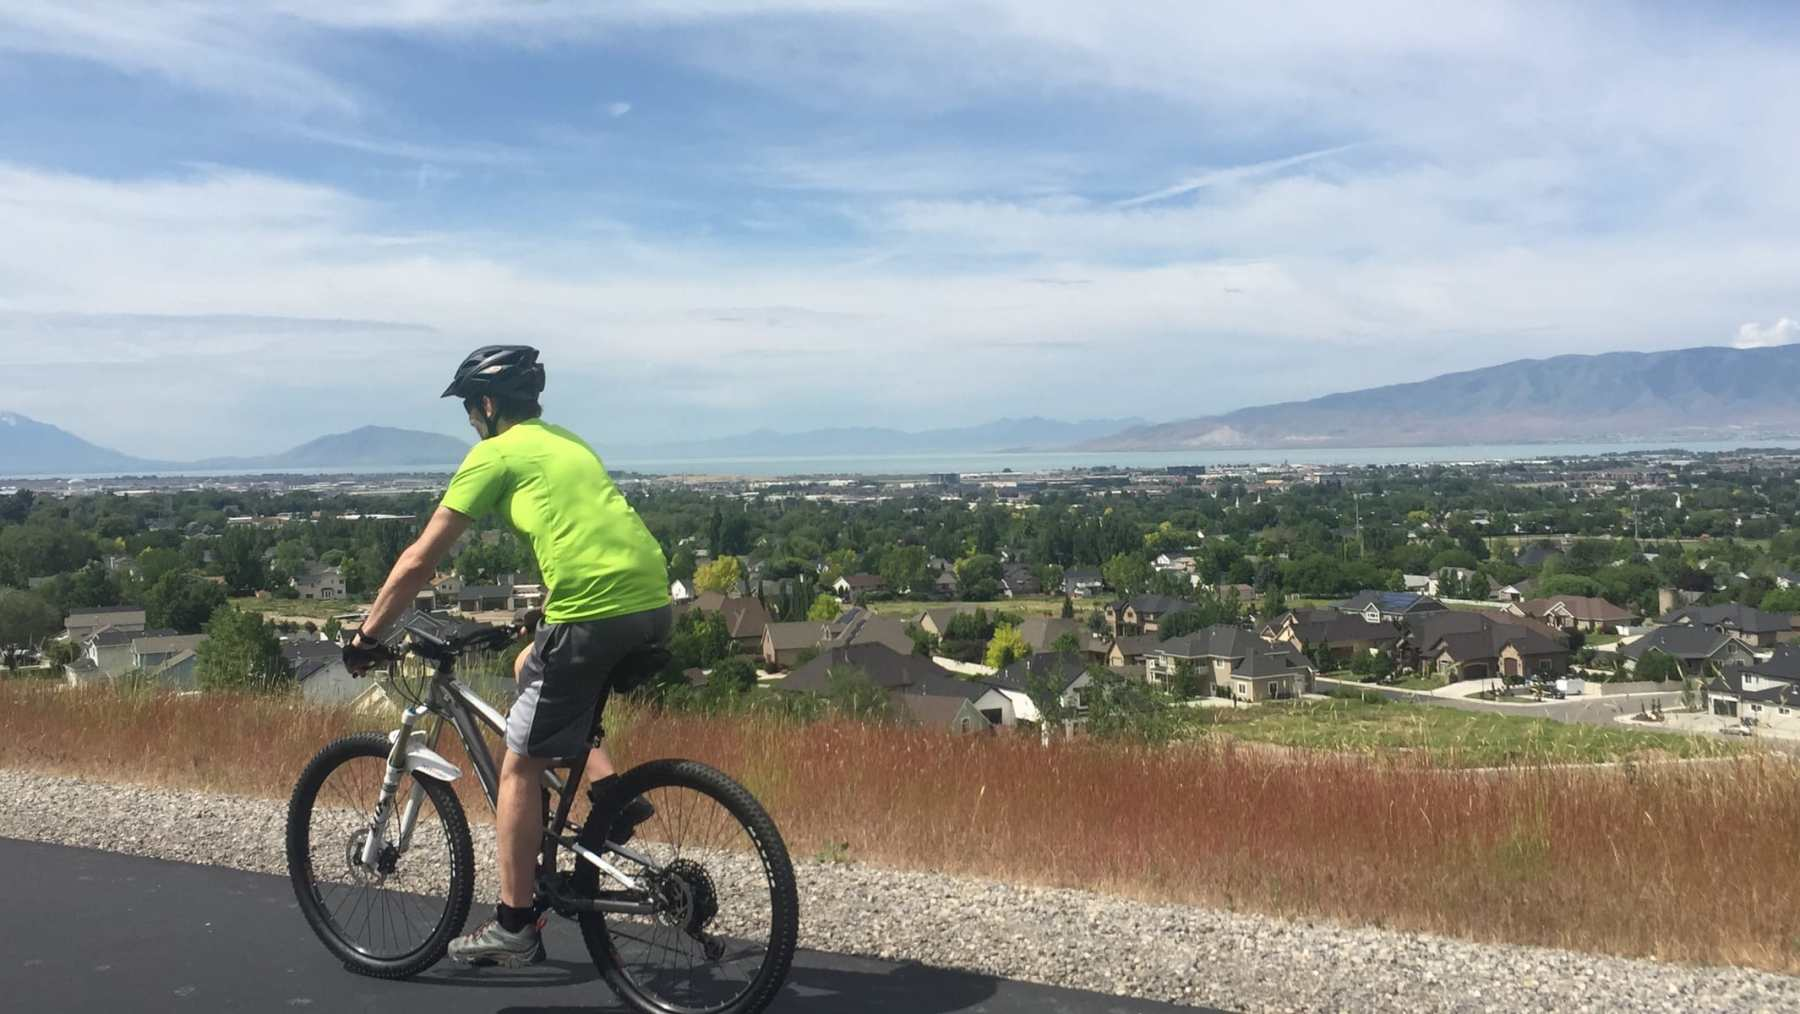 using his mountain bike to ride on the bike path for PT